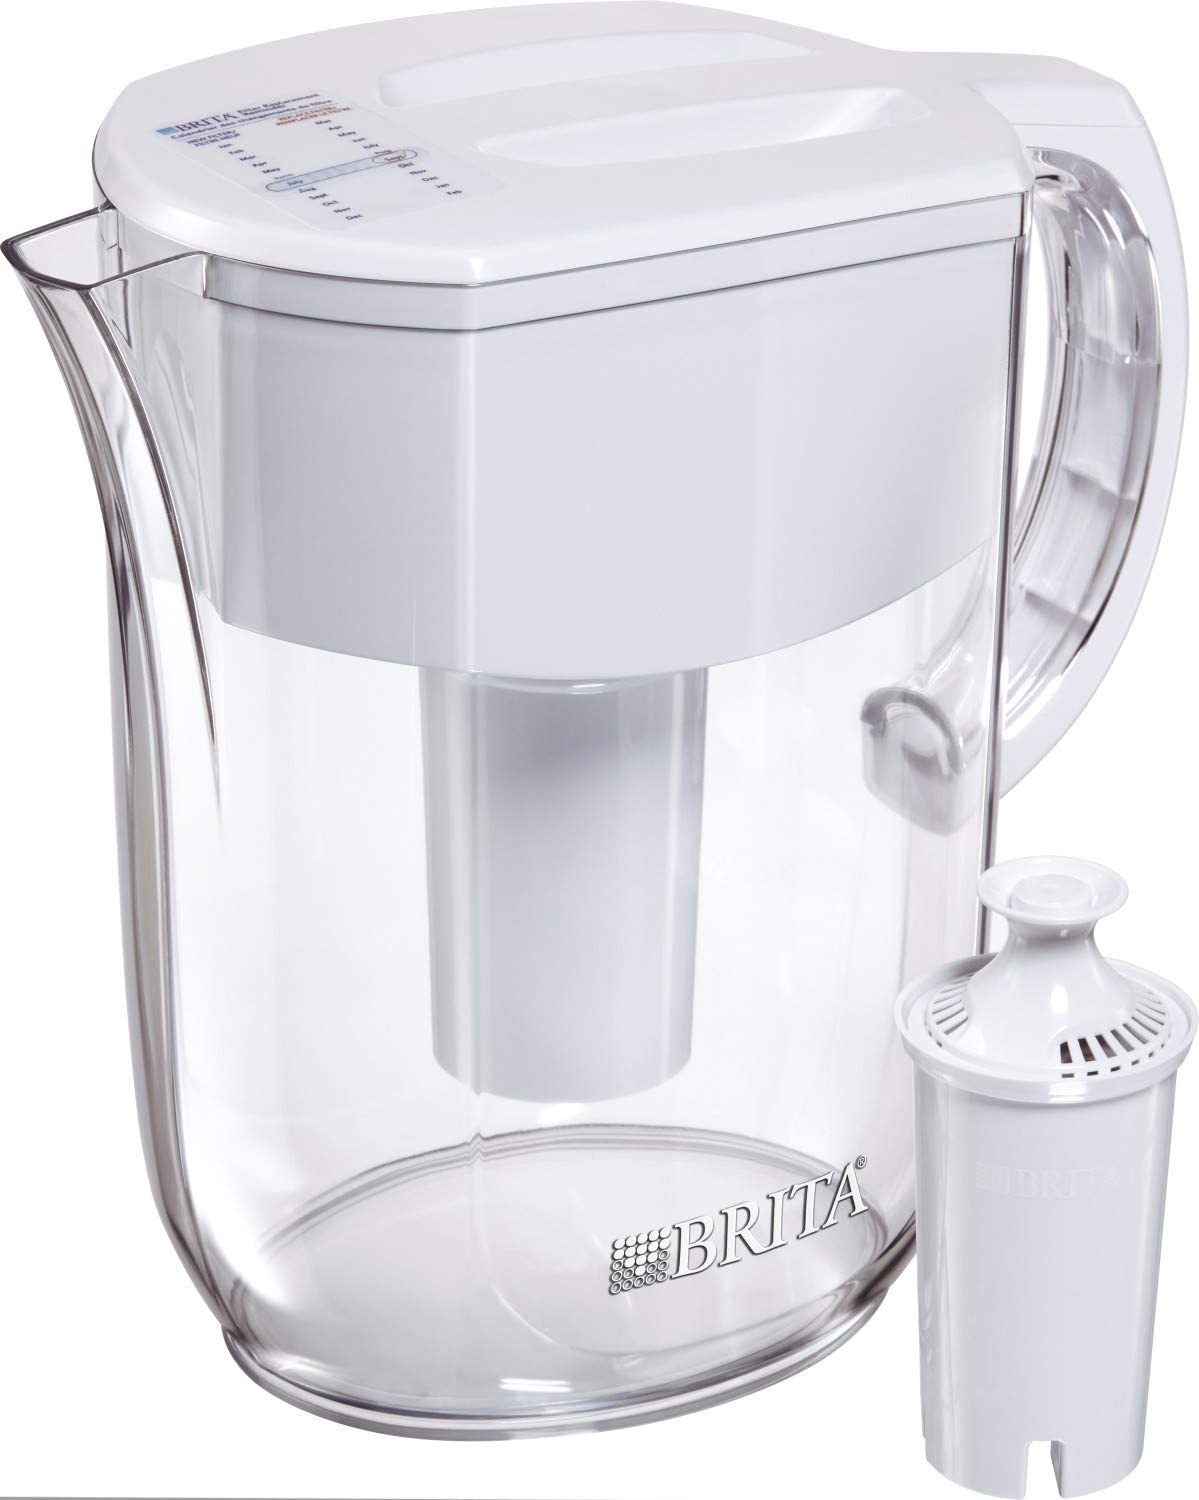 Large 10 Cup Everyday Water Filter Pitcher